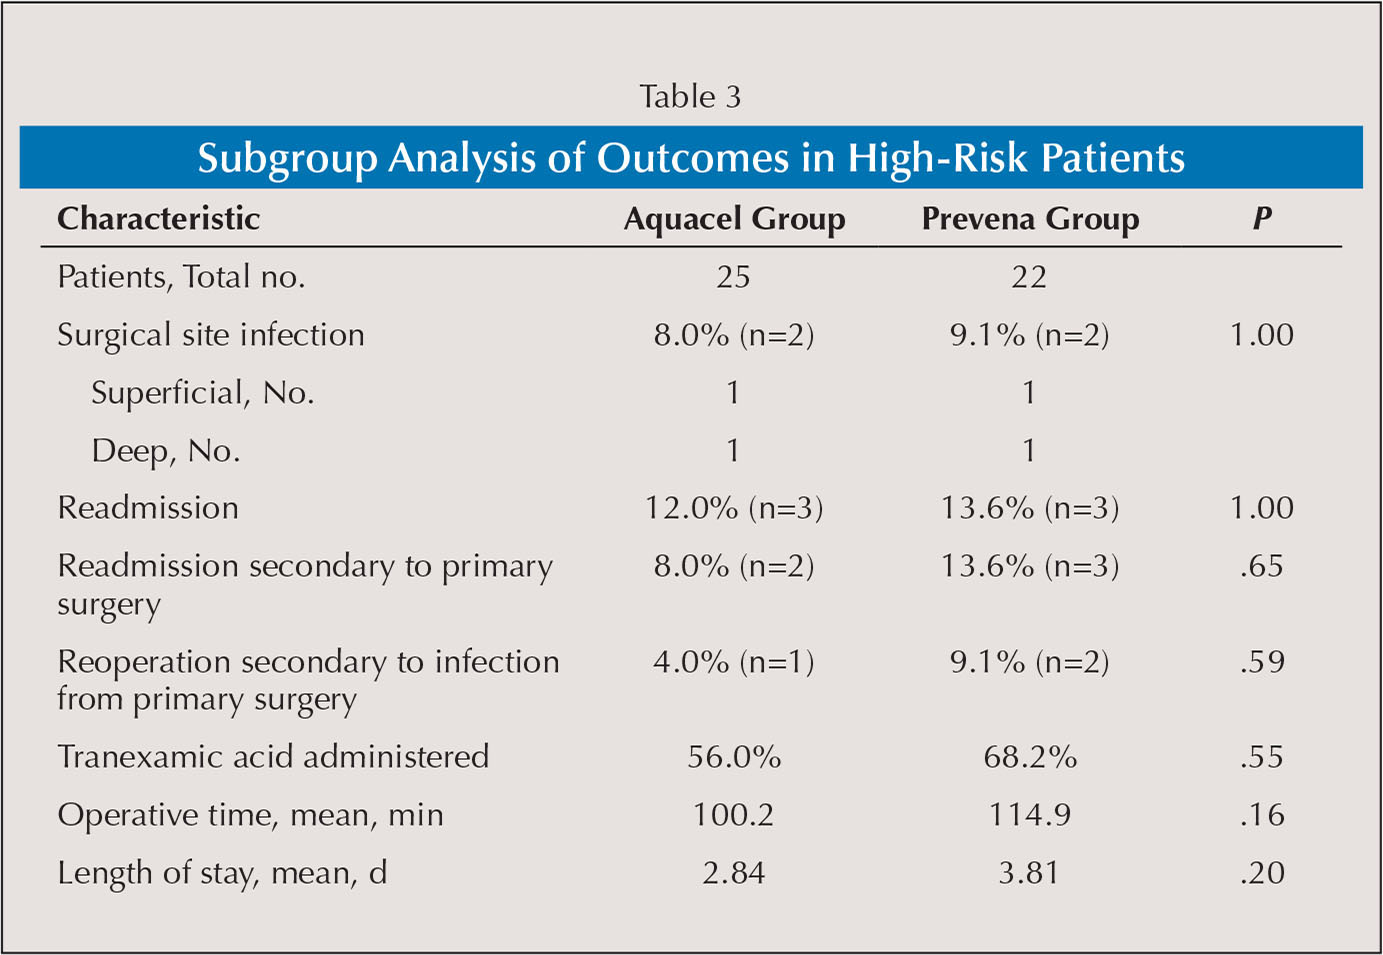 Subgroup Analysis of Outcomes in High-Risk Patients